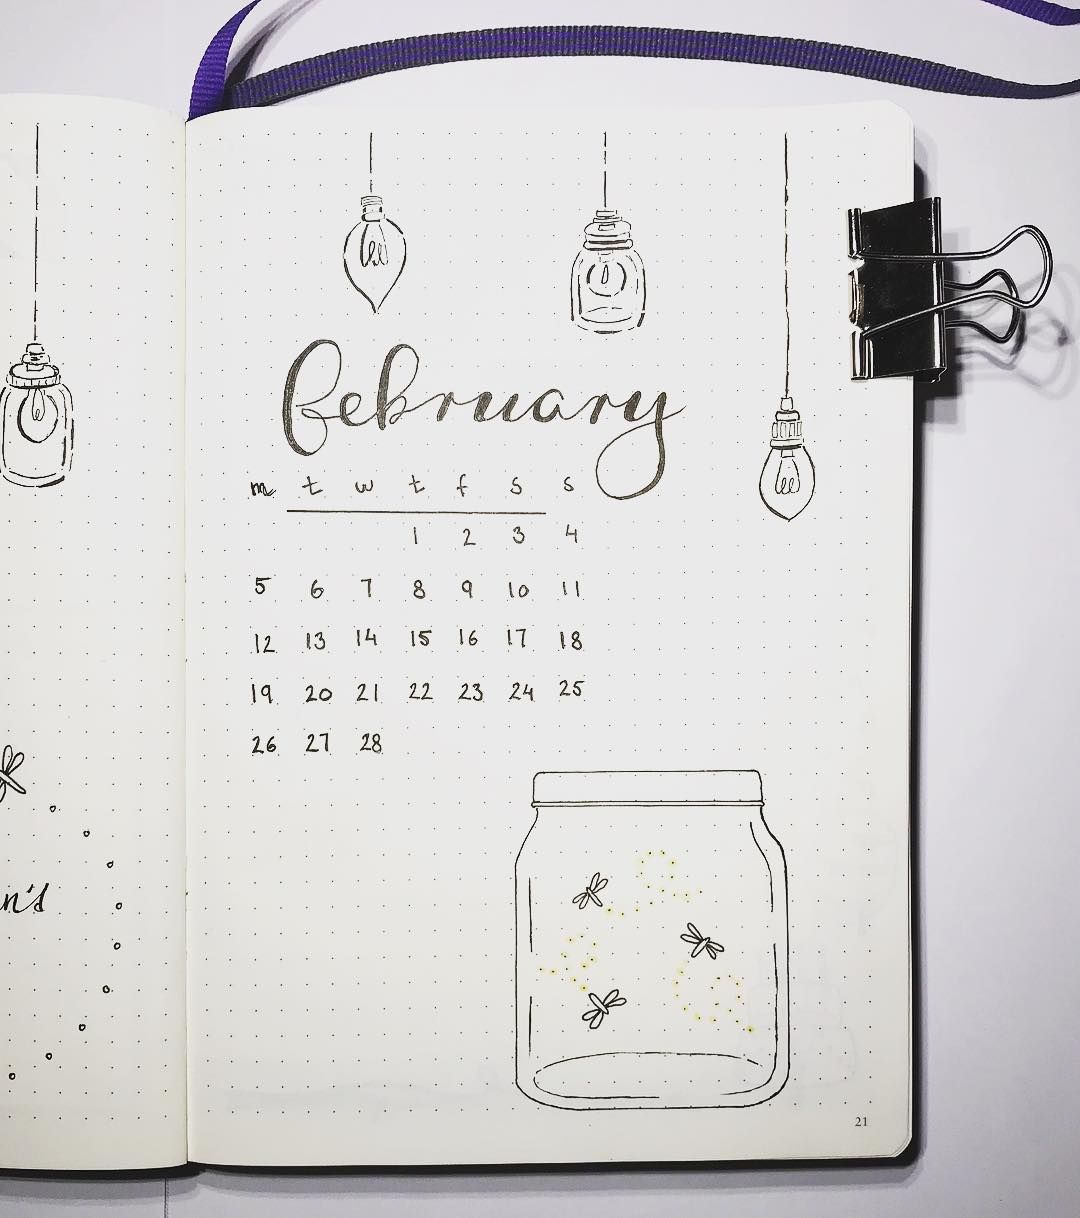 medium resolution of bullet journal monthly cover page february cover page fireflies in a jar drawing lightbulb drawings nordic notes